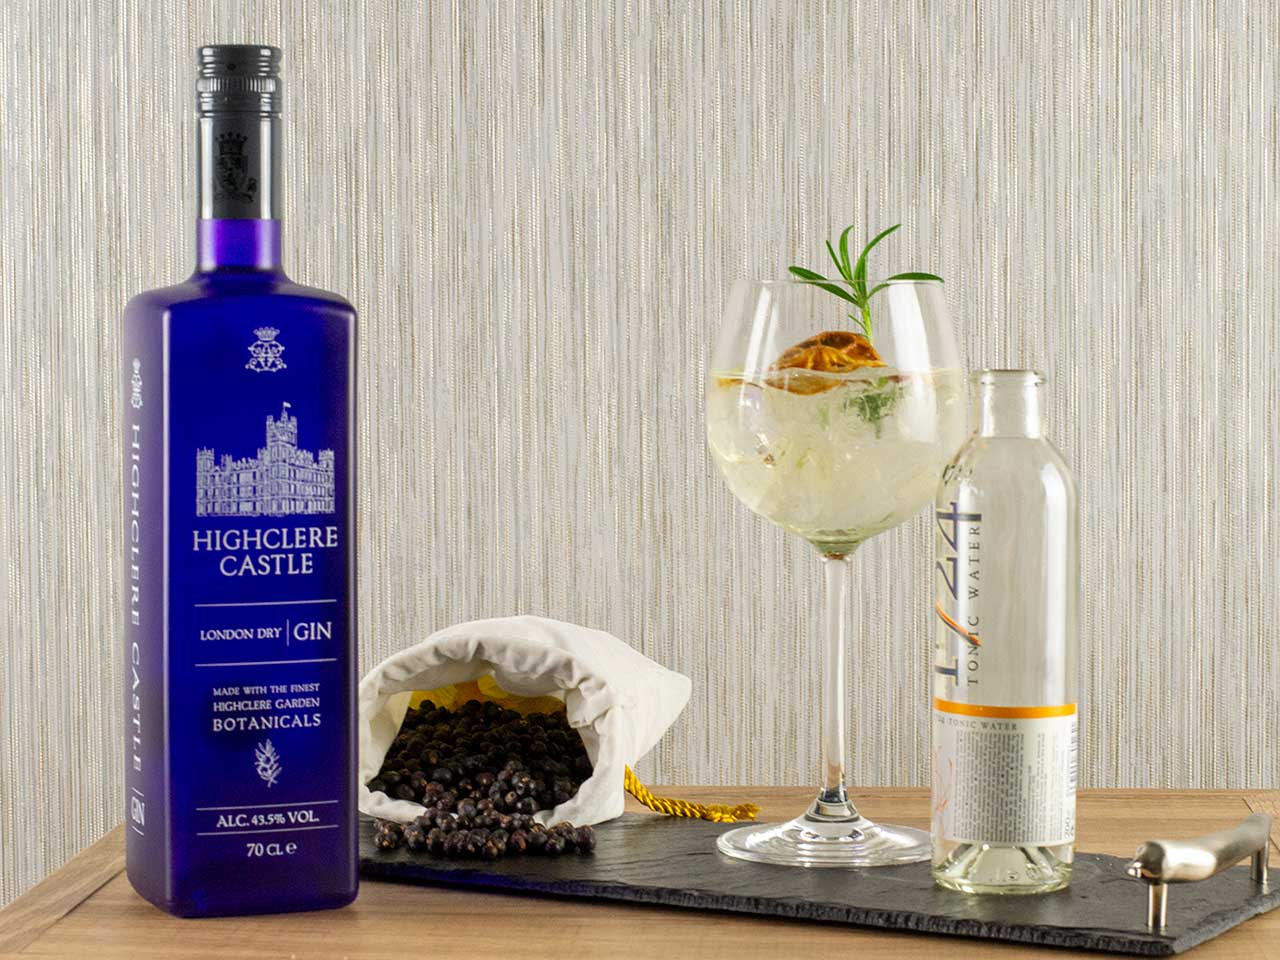 Highclere Castle Gin and tonc, garnished with dehydrated orange and rosemary.